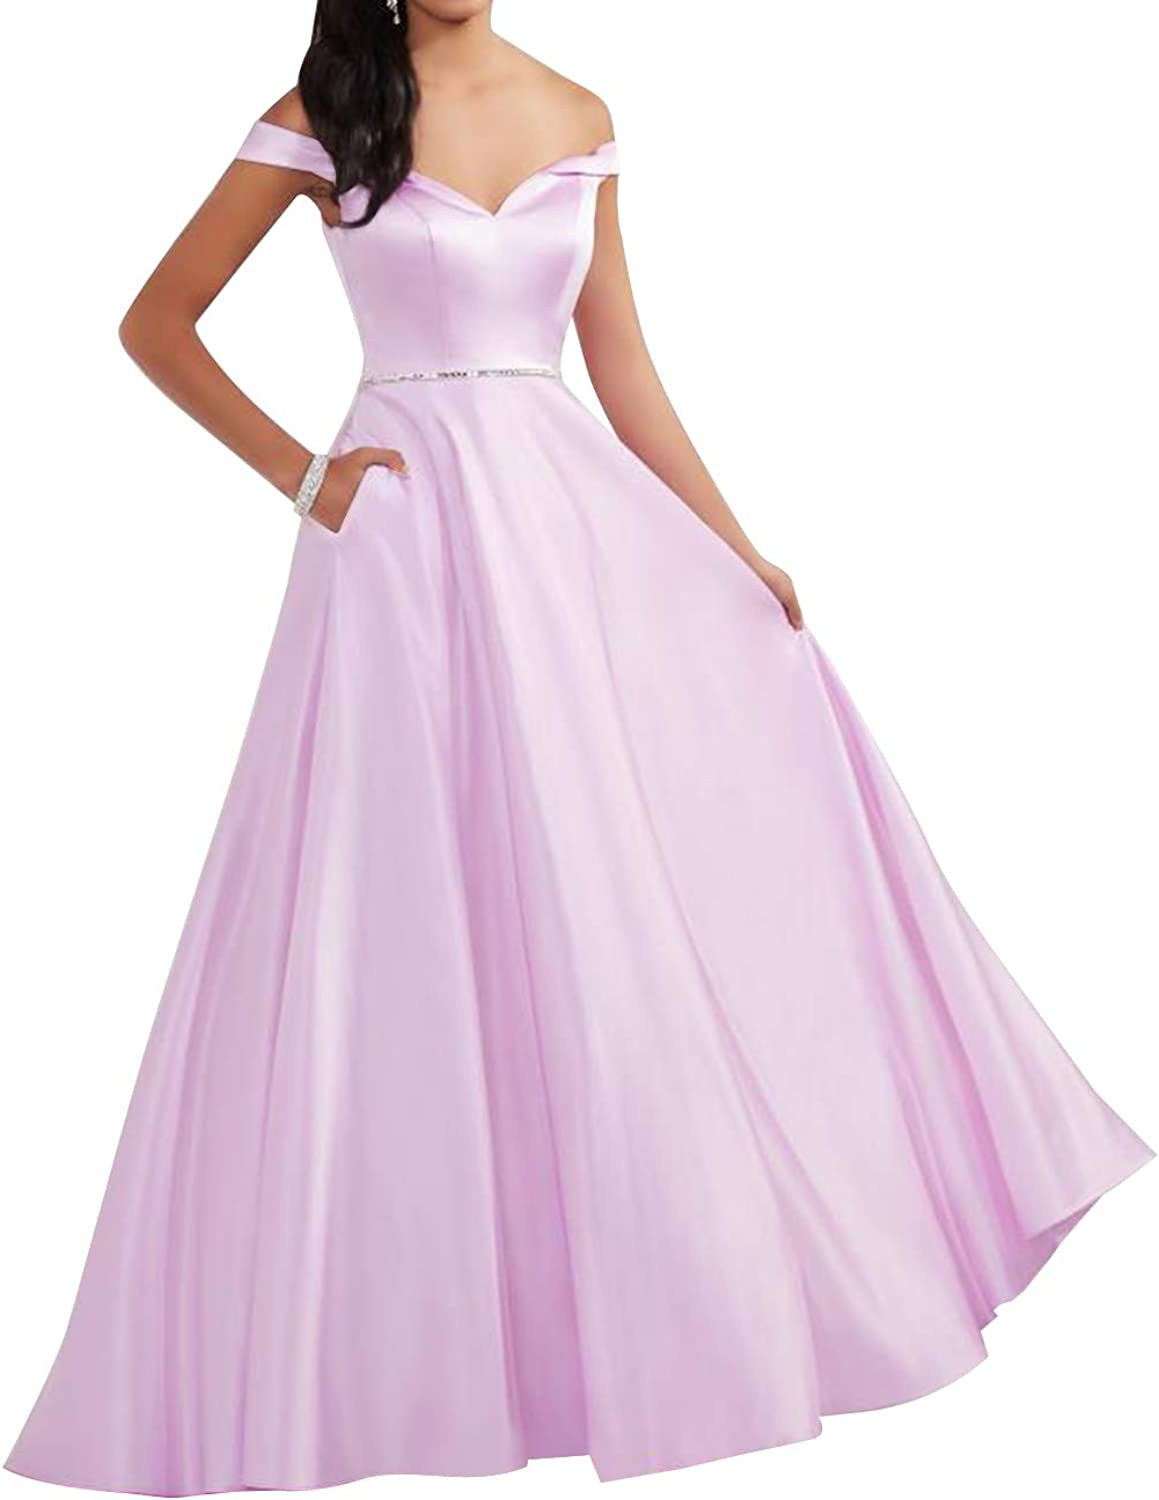 Homdor Off The Shoulder Prom Dresses Long ALine Backless Evening Ball Gown with Pockets